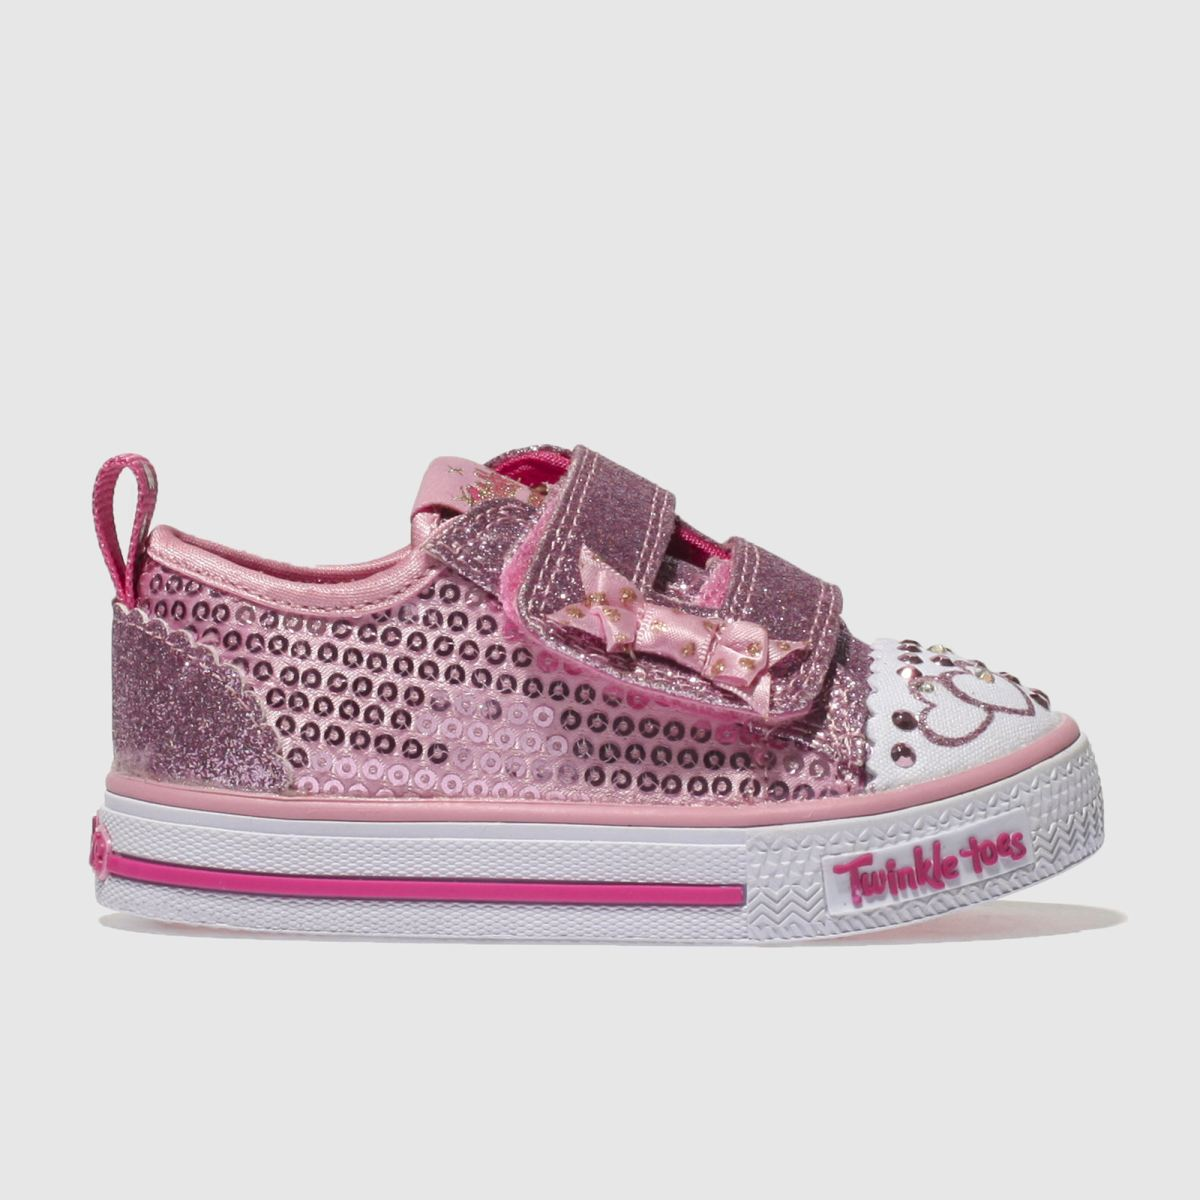 Skechers Pink Shuffles Itsy Bitsy Trainers Toddler